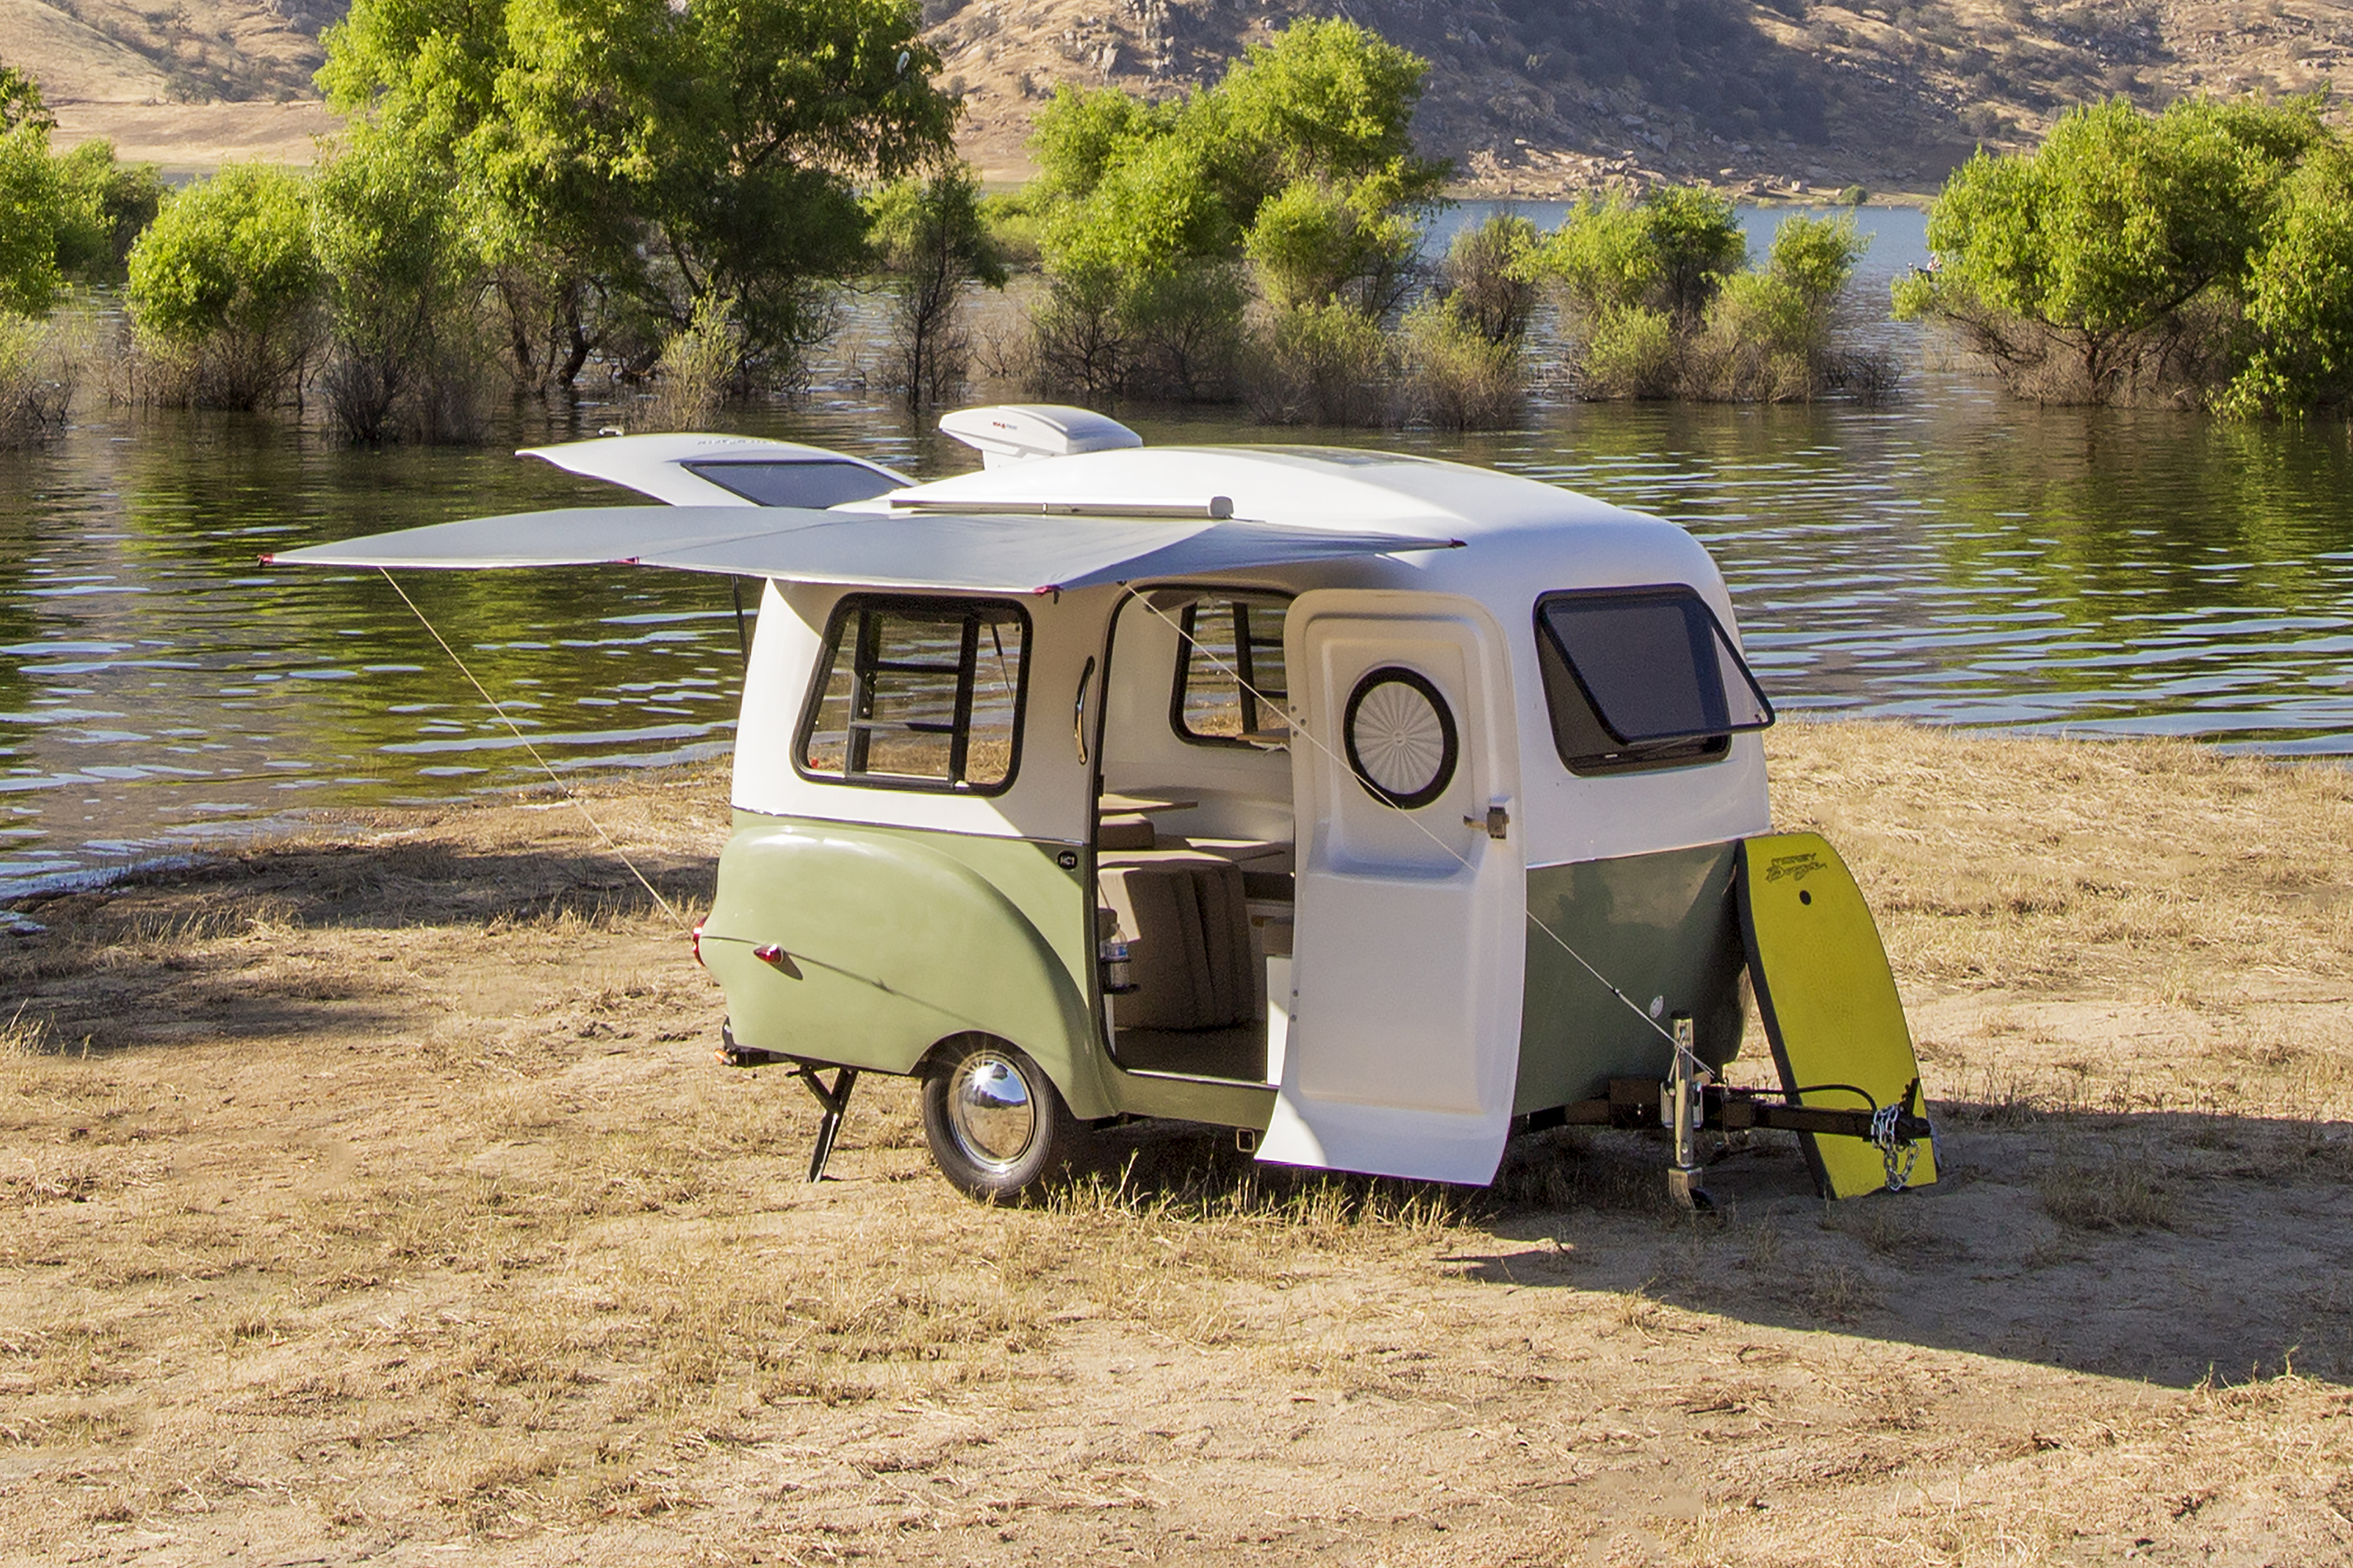 A camper van sitting in a clearing adjacent to a body of water. The van is white and green. All of the van's doors are open.